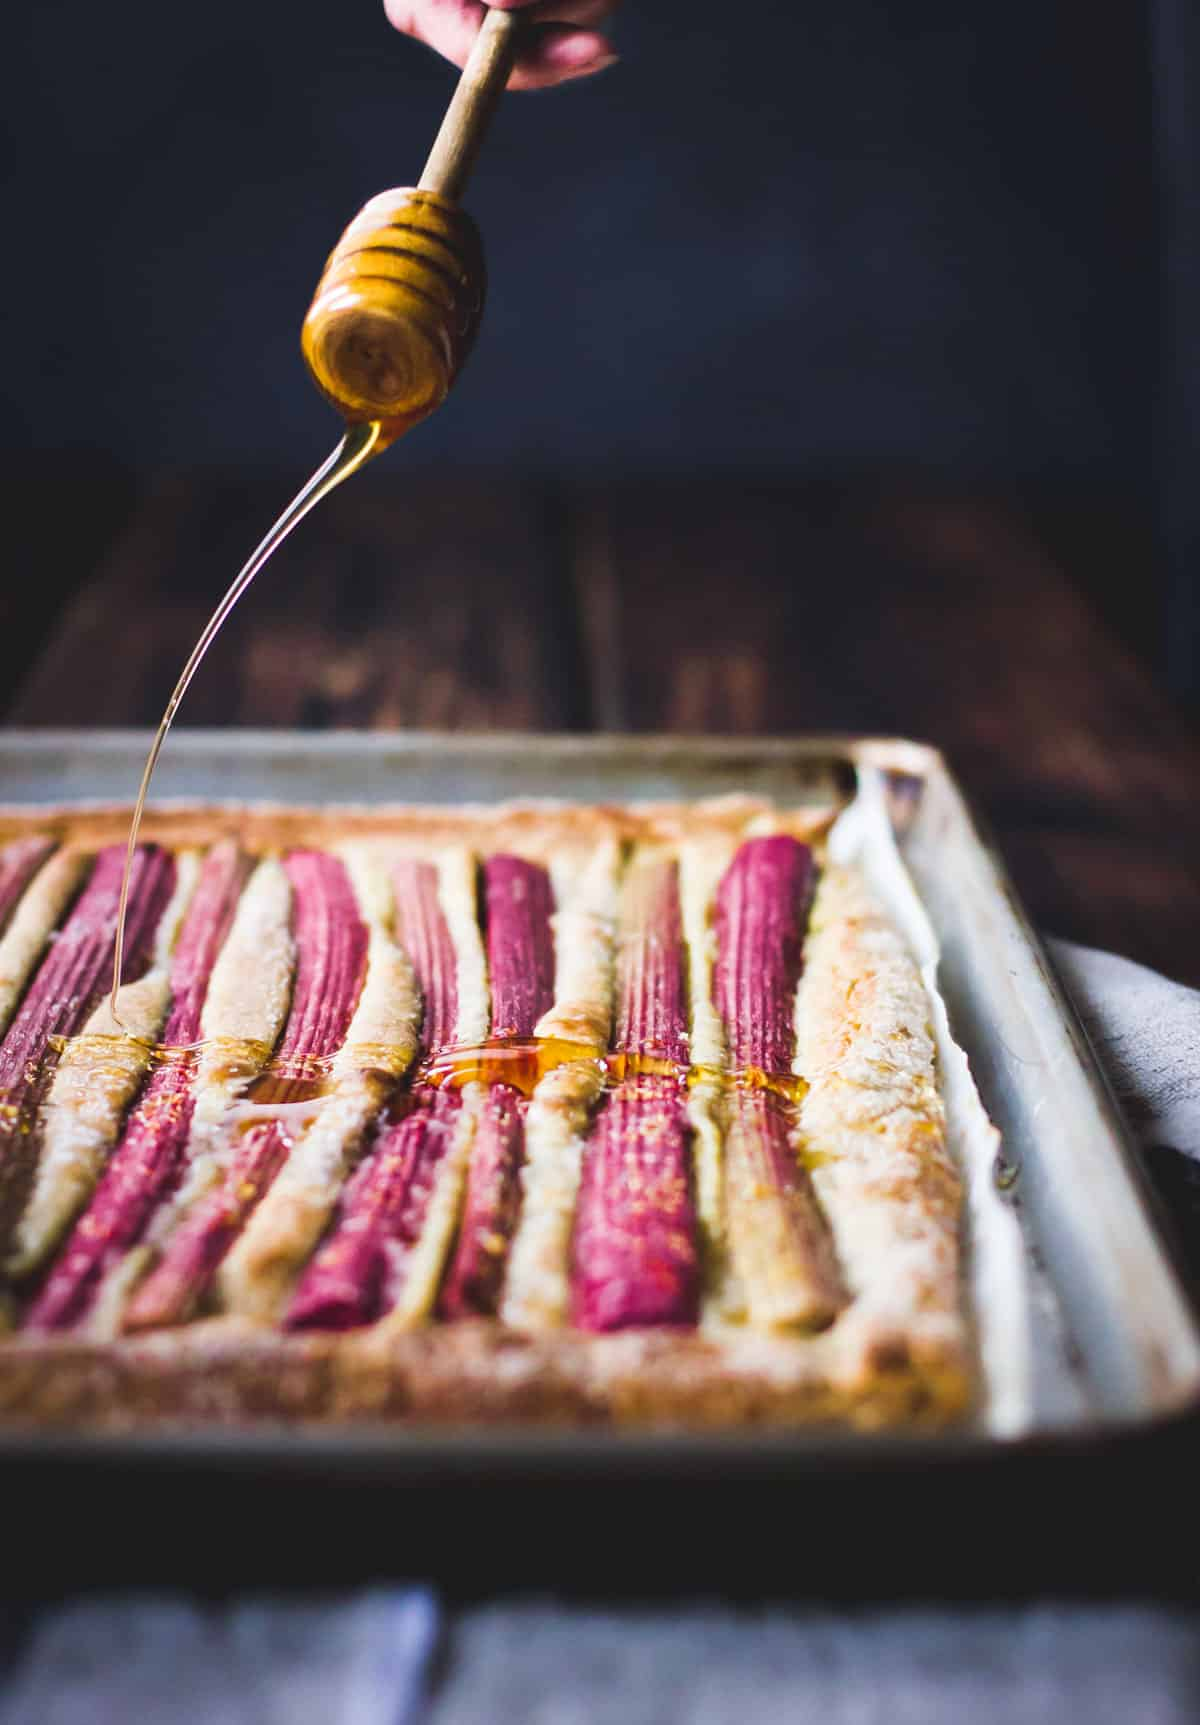 drizzling honey over a rhubarb tart